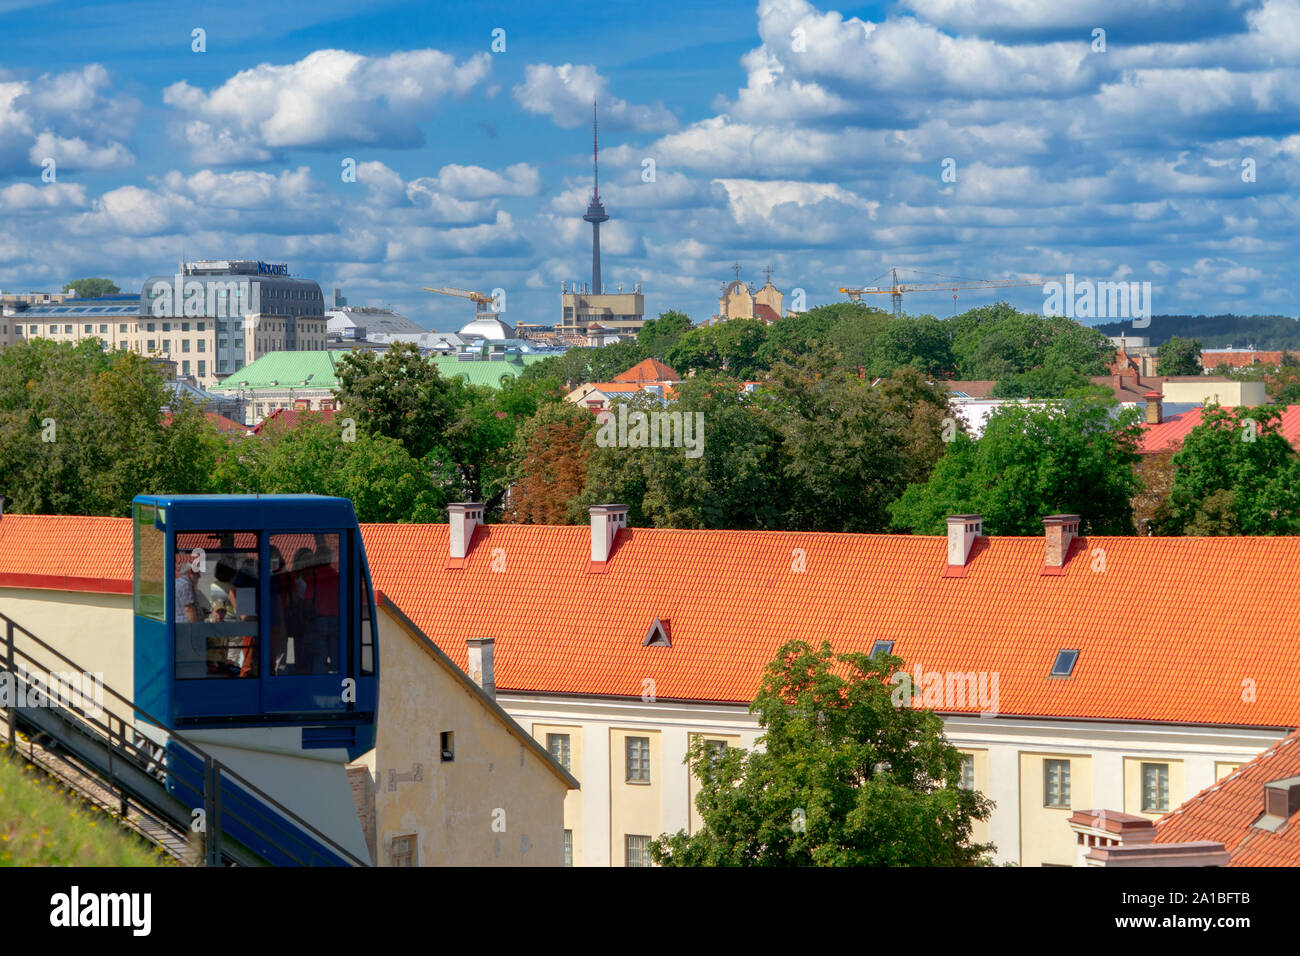 Vilnius, Lithuania - August 19, 2019: View to Vilnius city with funicular to Gediminas tower in Vilnius, Lithuania Stock Photo